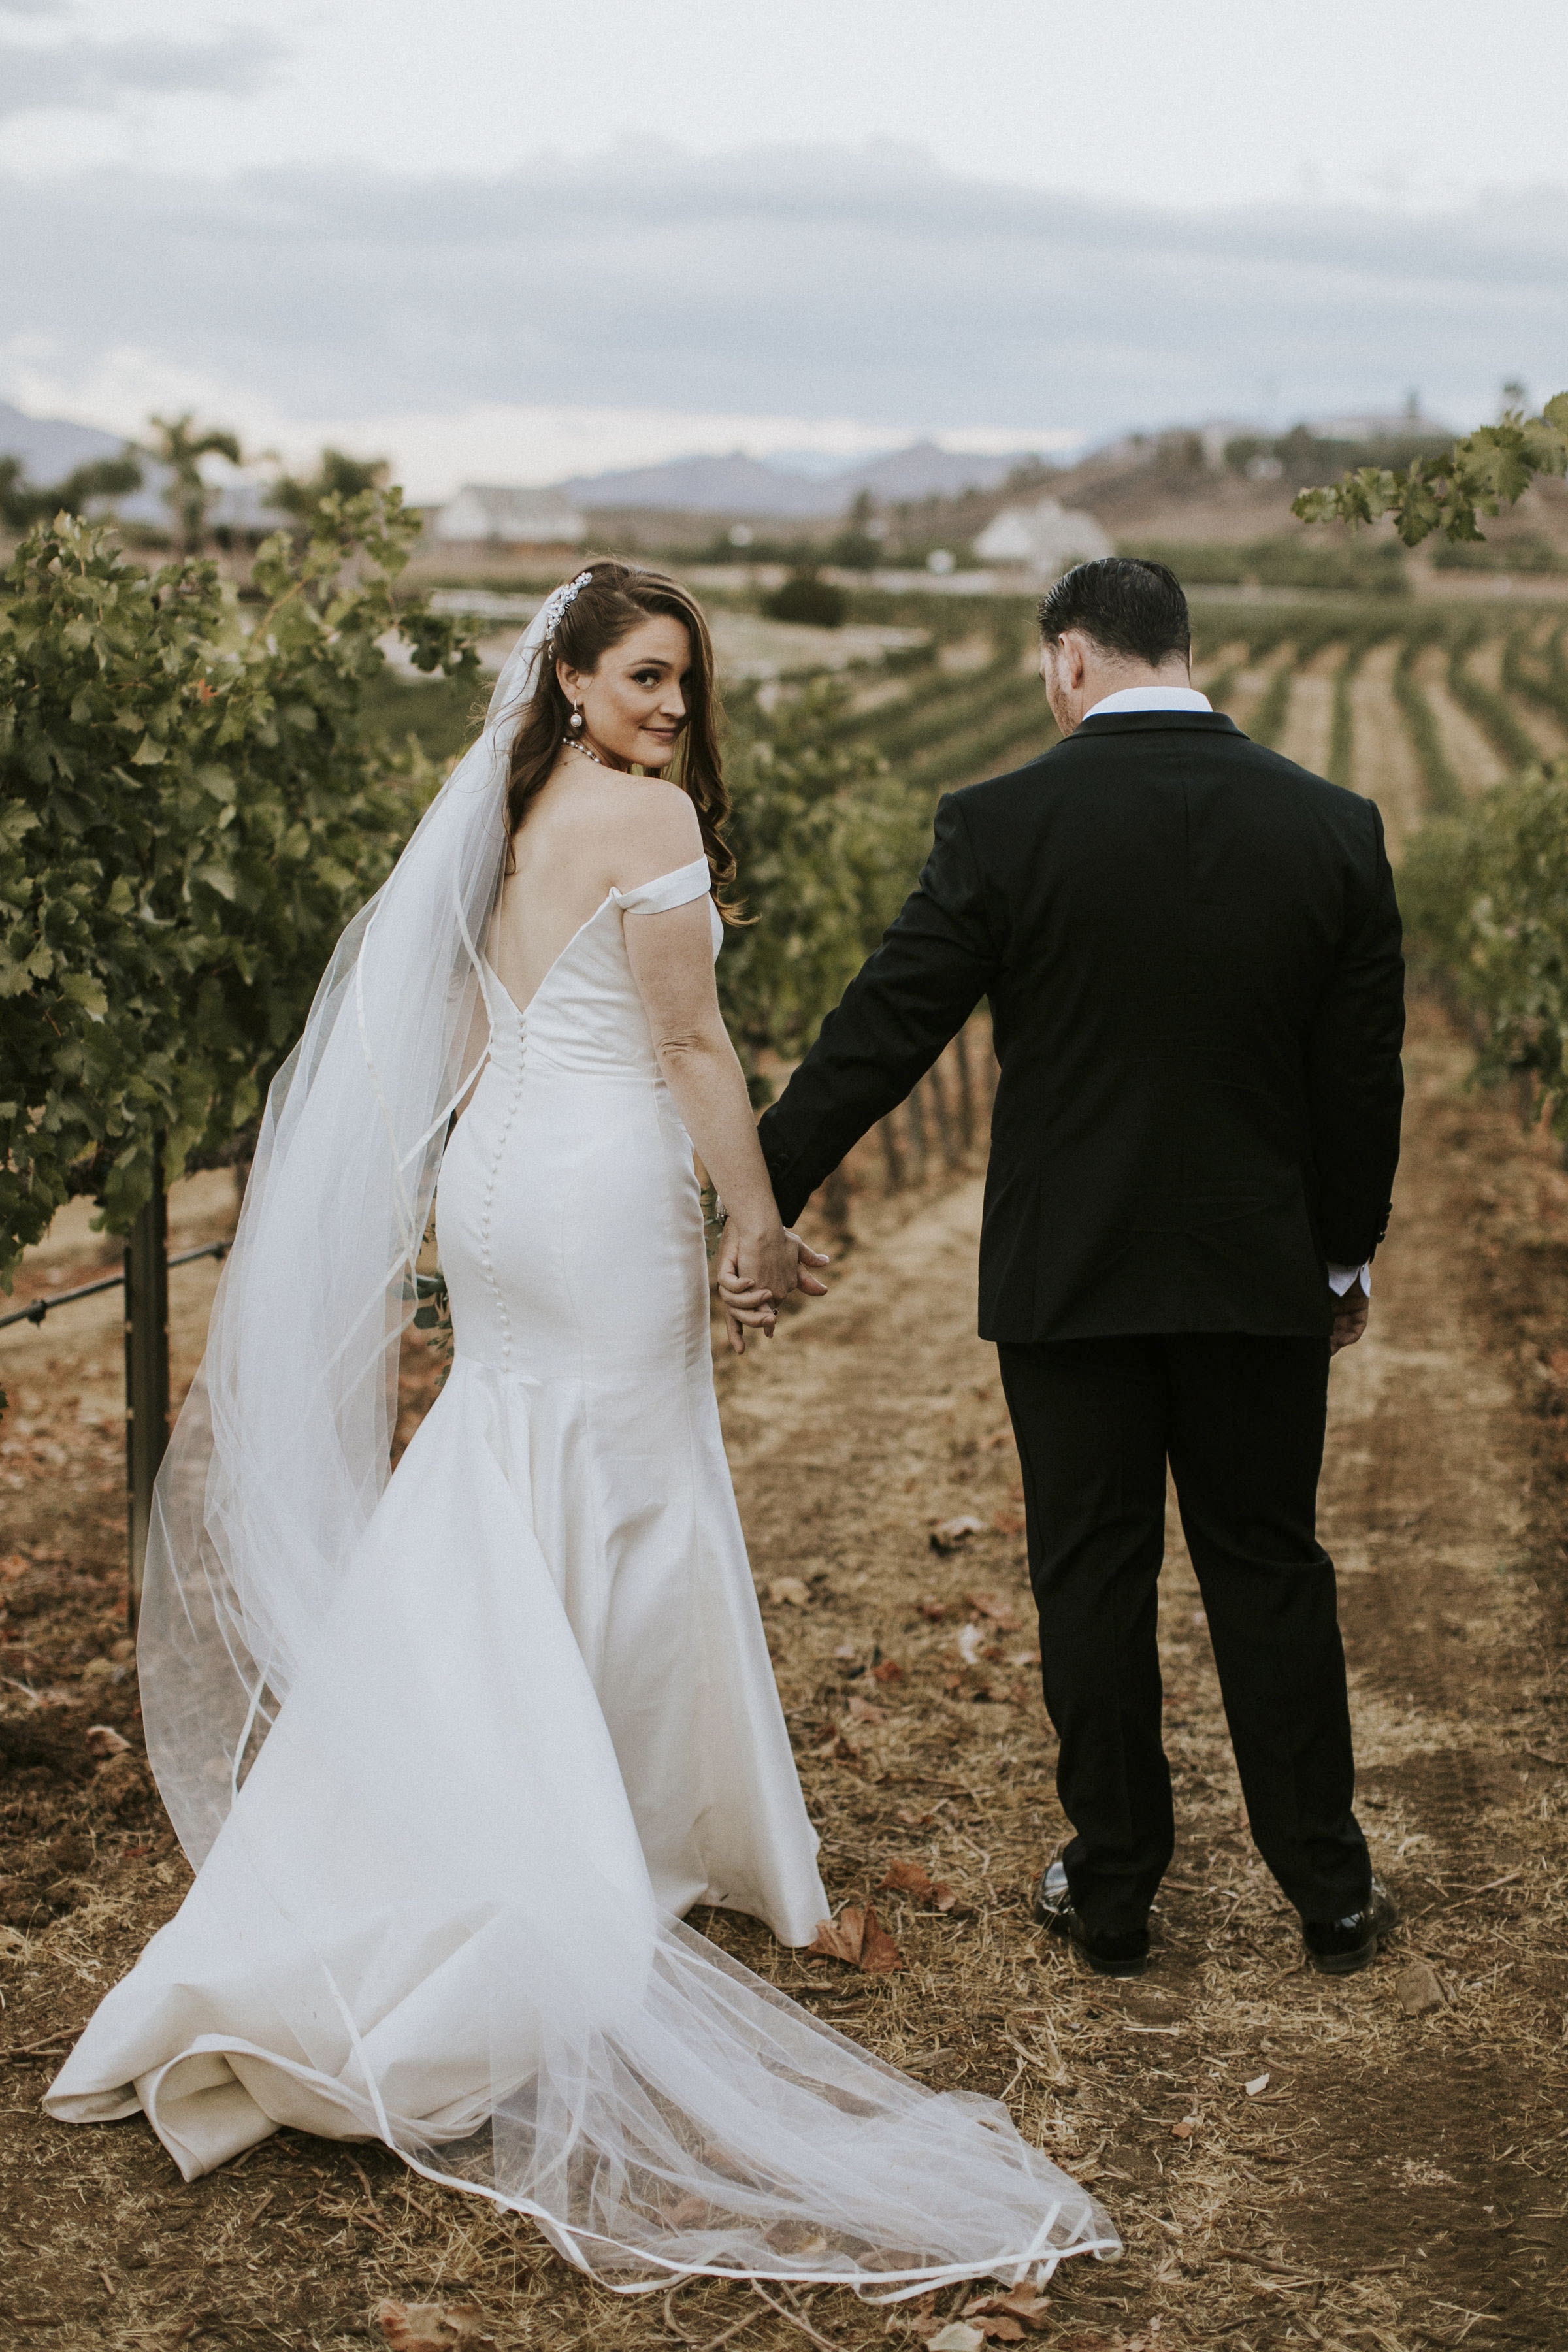 Domenica Beauty _ Hair and Makeup Artist _Wedding _ Temecula, CA _ Catherine and Darryl _ 33.JPG